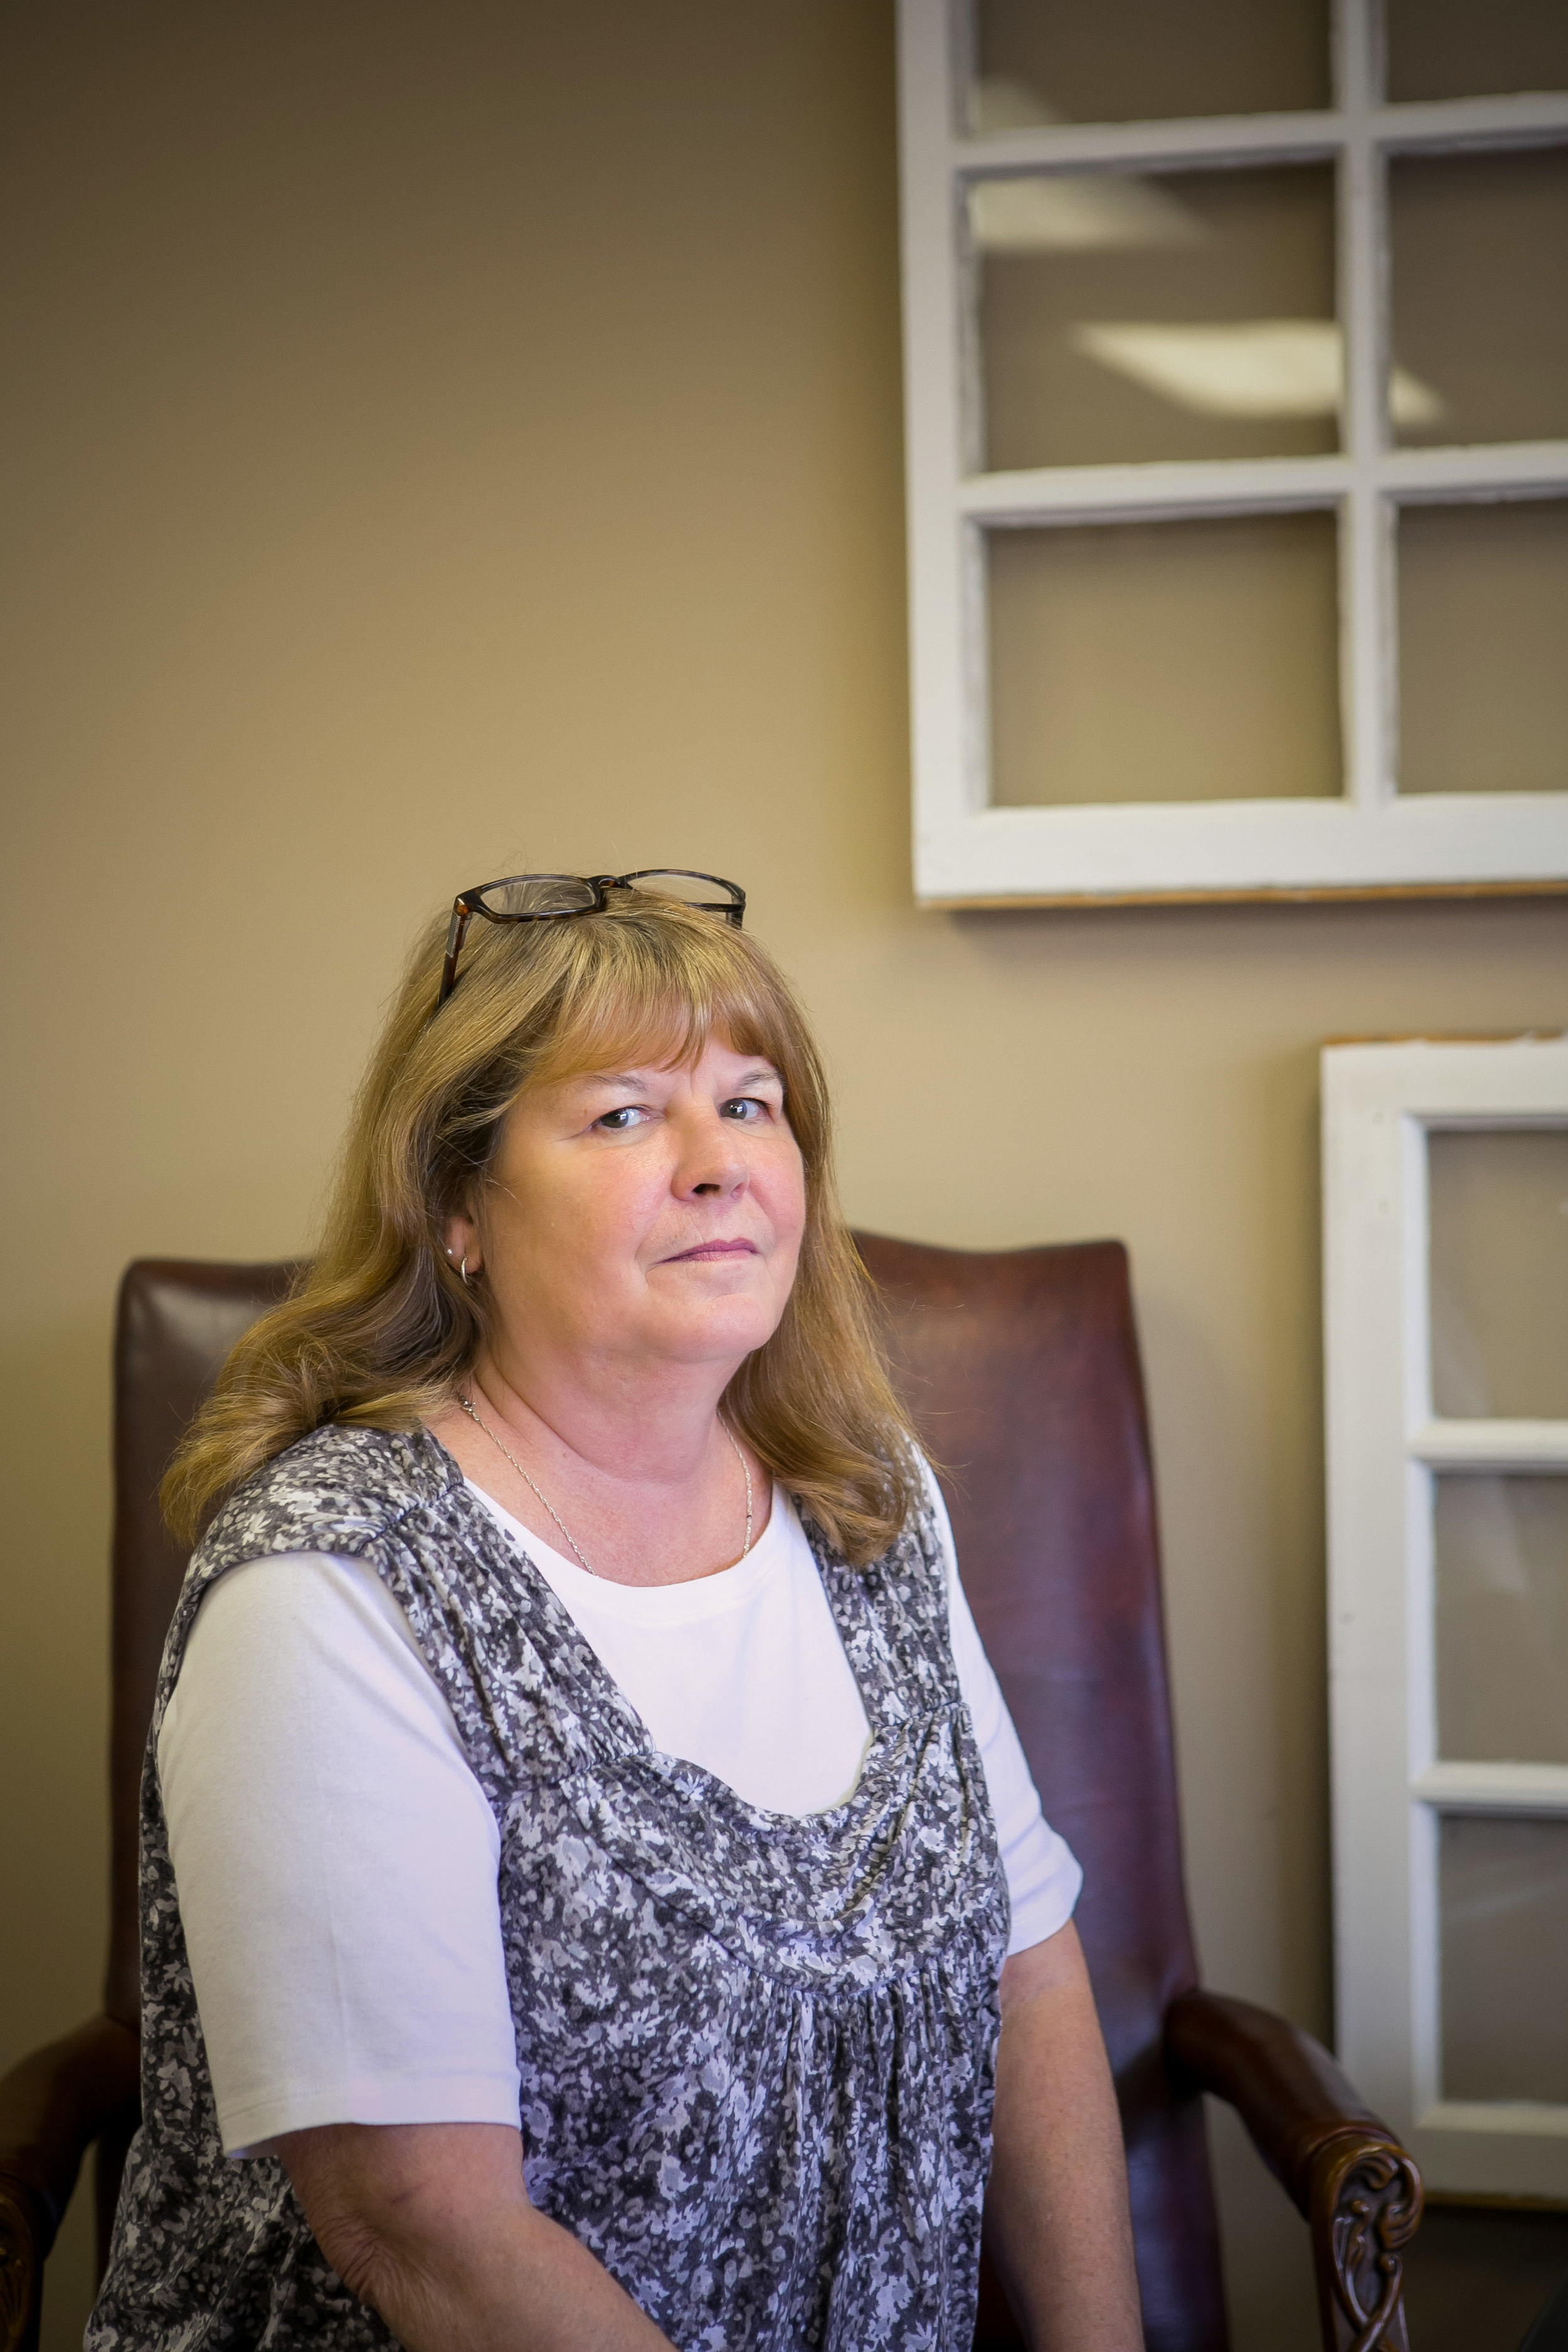 Carol Hile   Sales Coordinator  Carol has been involved in the window and door business for twenty years and has been an integral part of the Custom View team since 2008. She enjoys reading and cooking and lives in Henrico with her husband Richard.